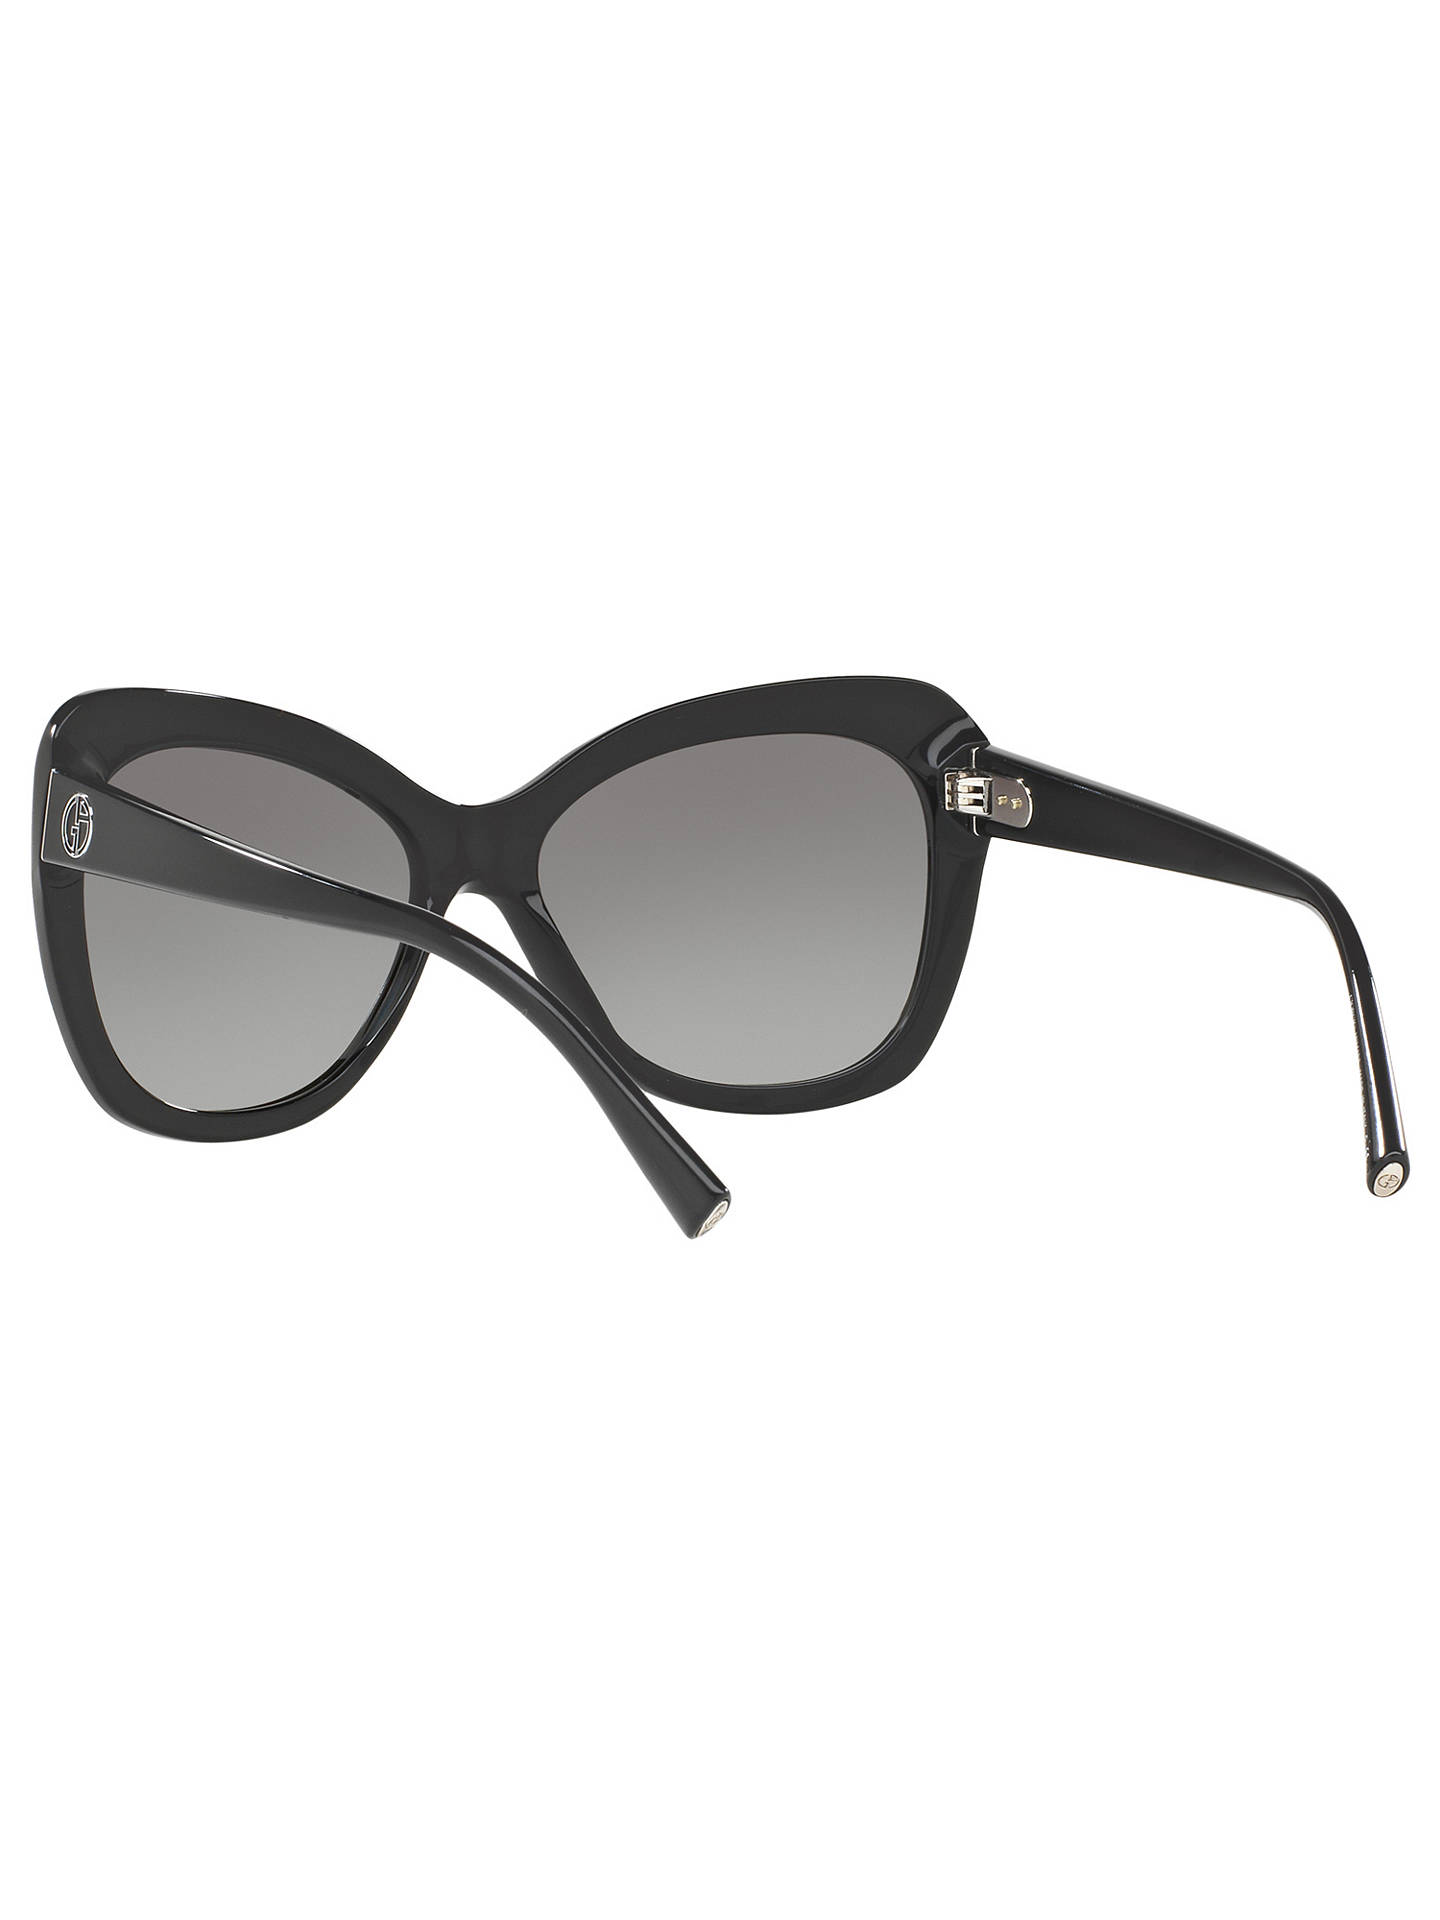 8c7e9fd235b5 Giorgio Armani AR8082 Cat s Eye Sunglasses at John Lewis   Partners